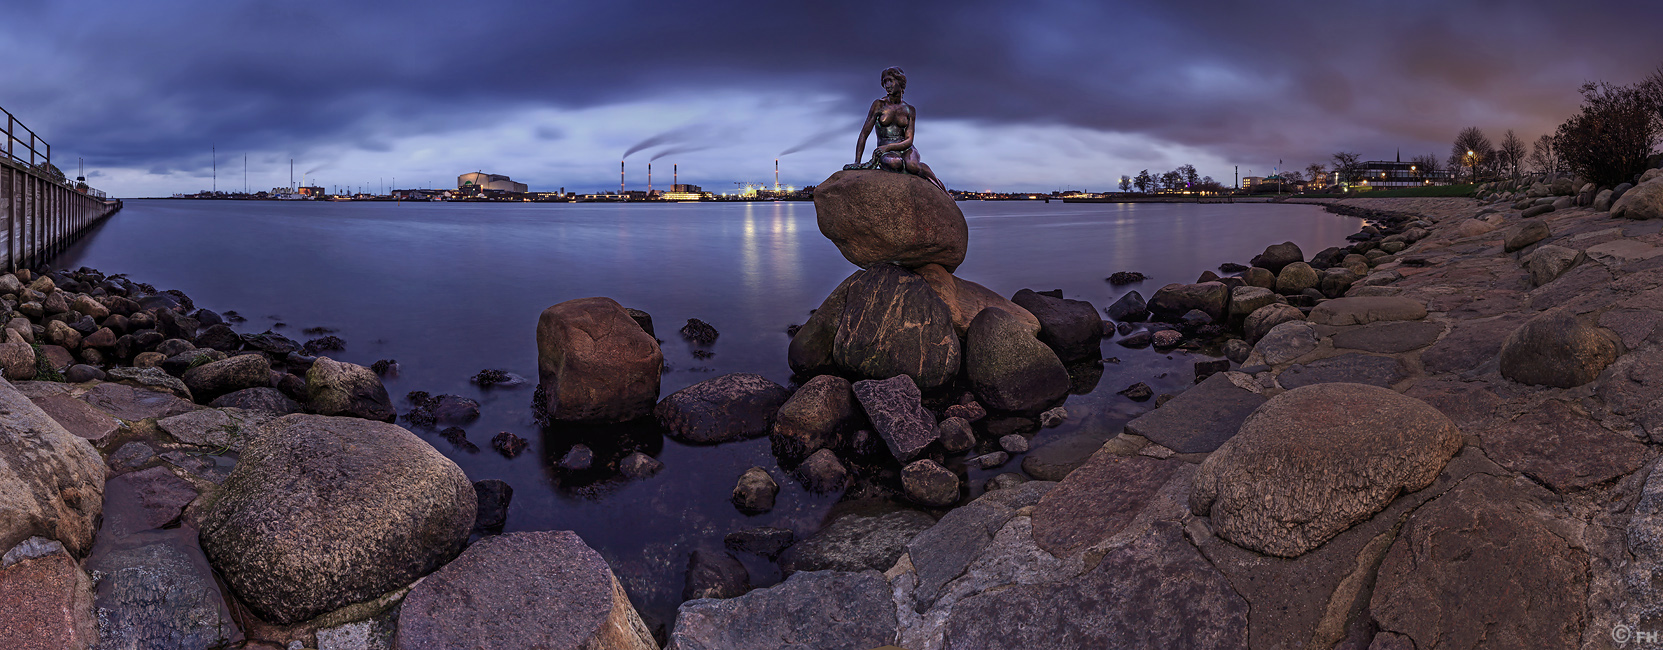 Mermaid_Pano_k_3